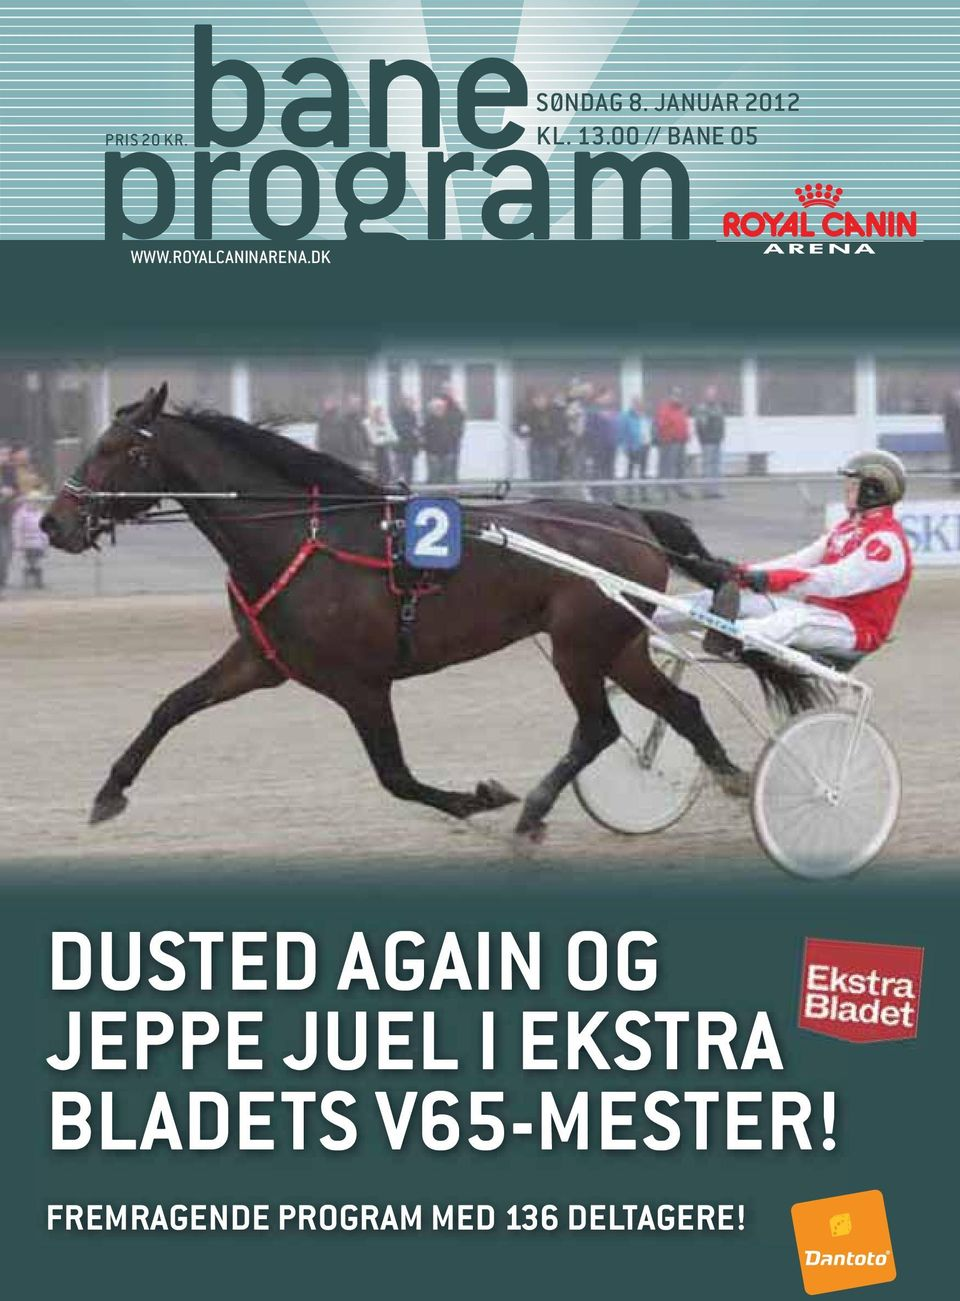 .00 // BANE 0 DUSTED AGAIN OG JEPPE JUEL I